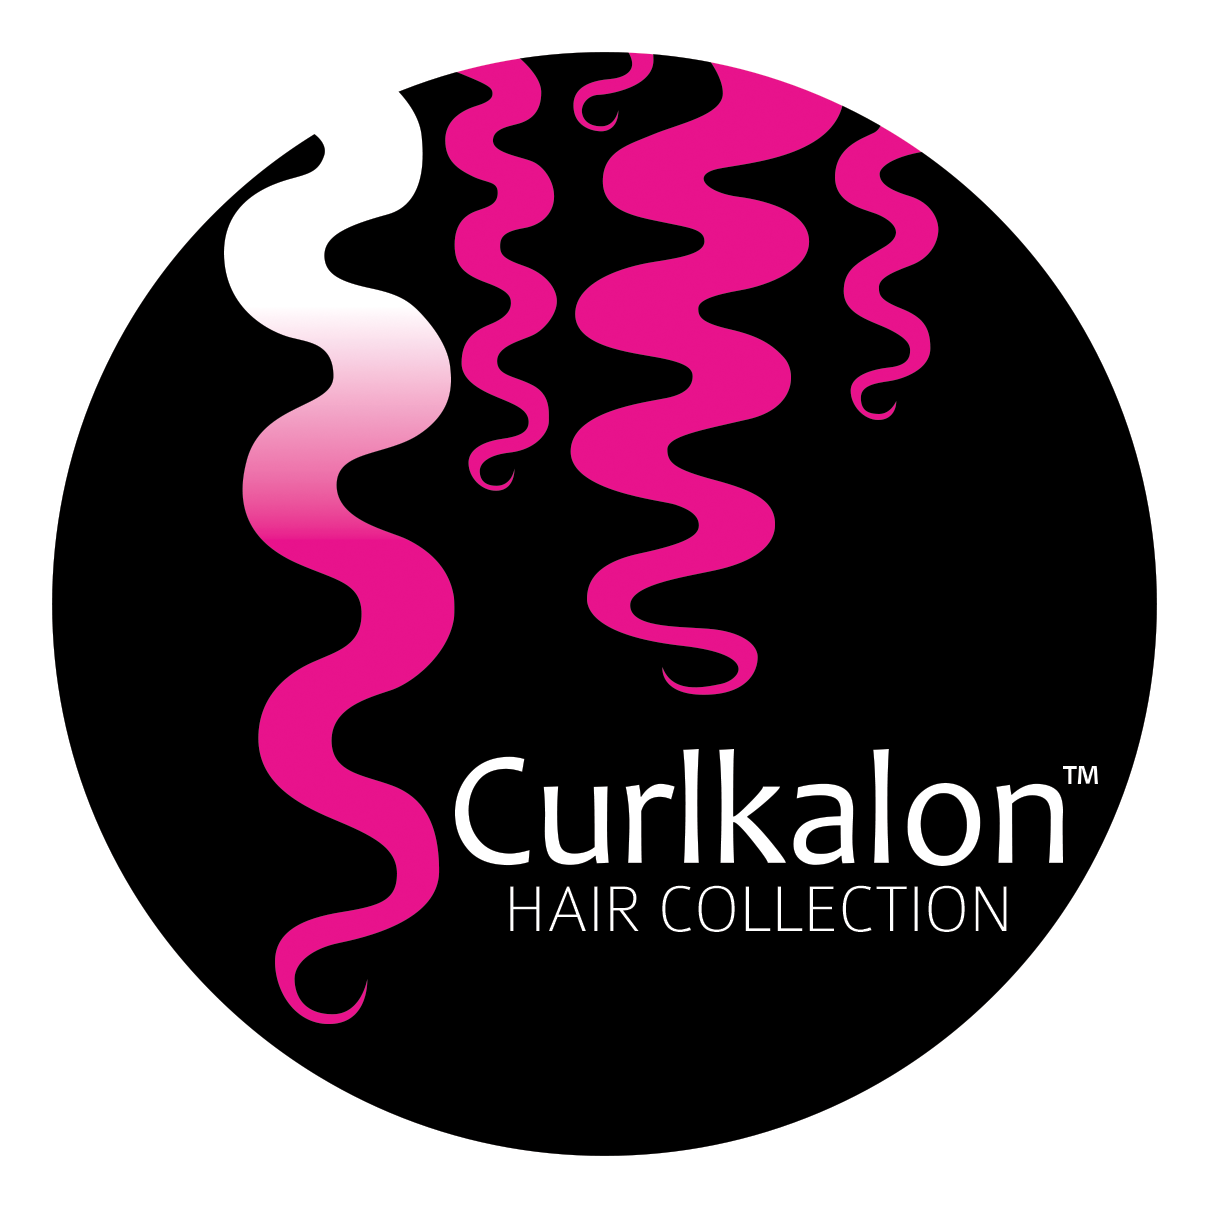 Curlkalon Hair-collection_forBlackBackground